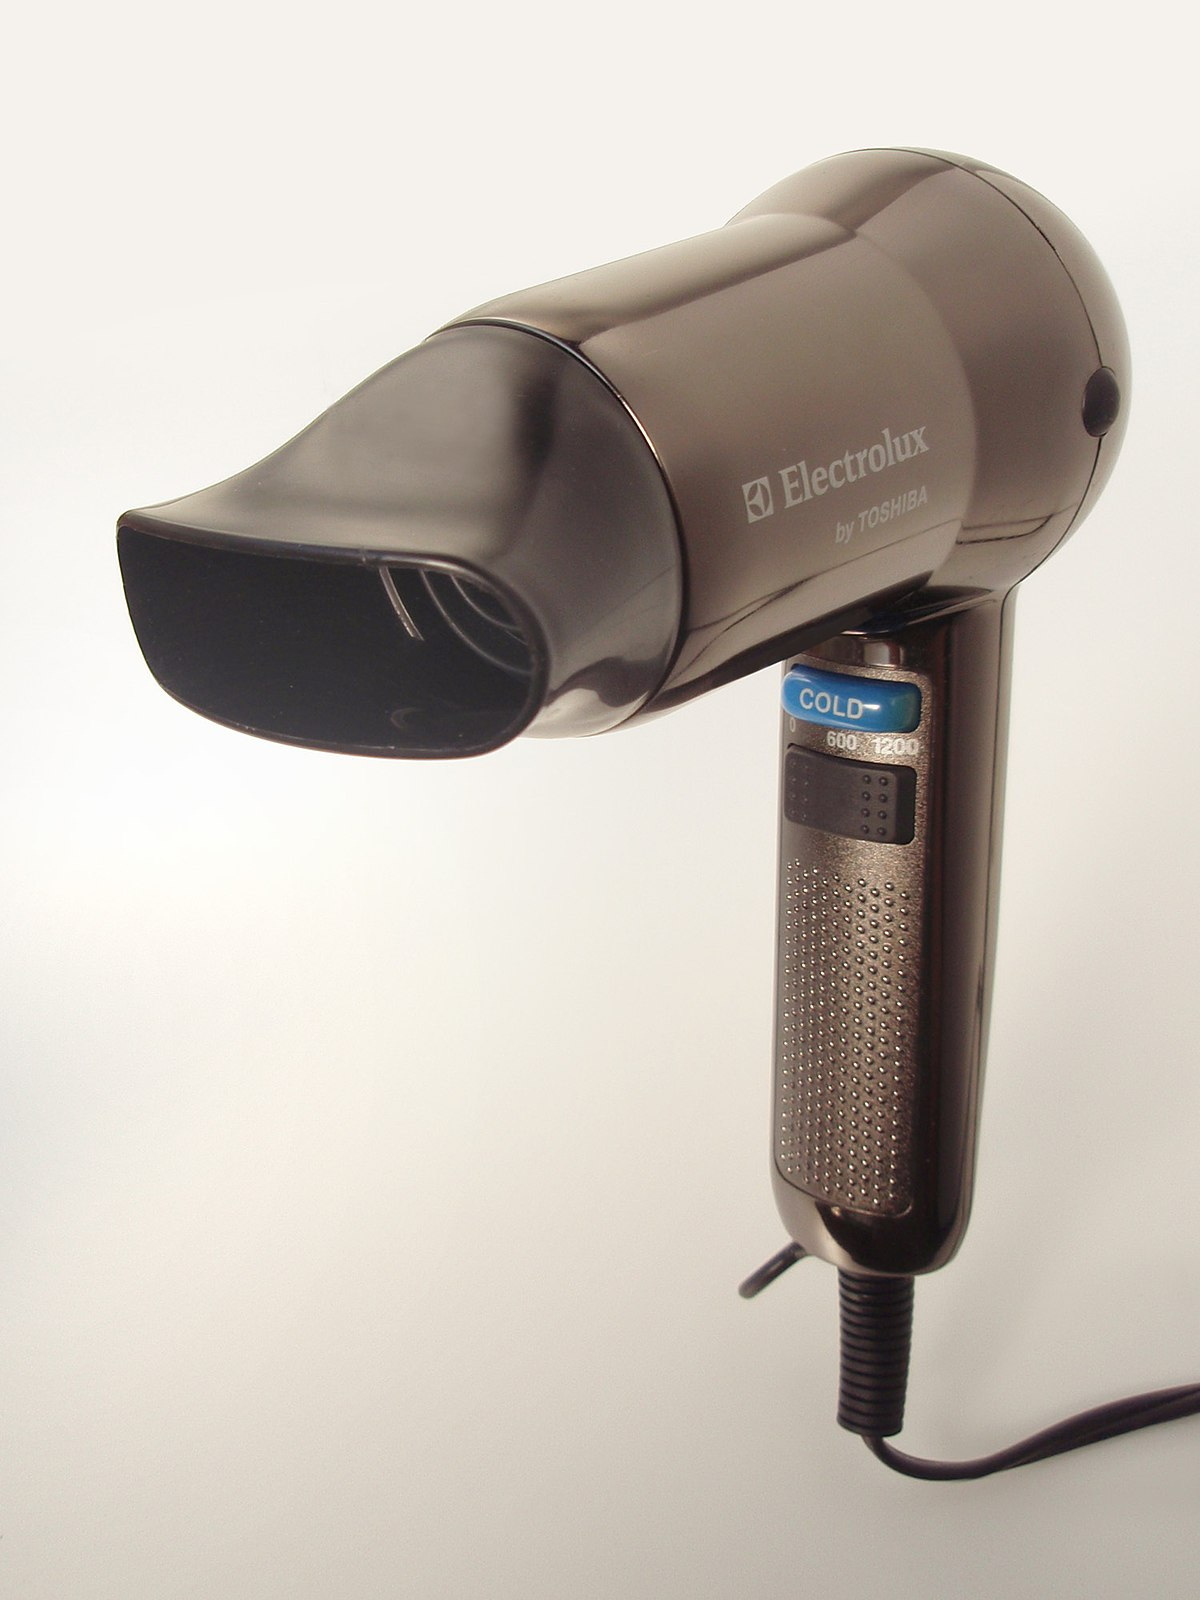 Hair dryer - Wikipedia on